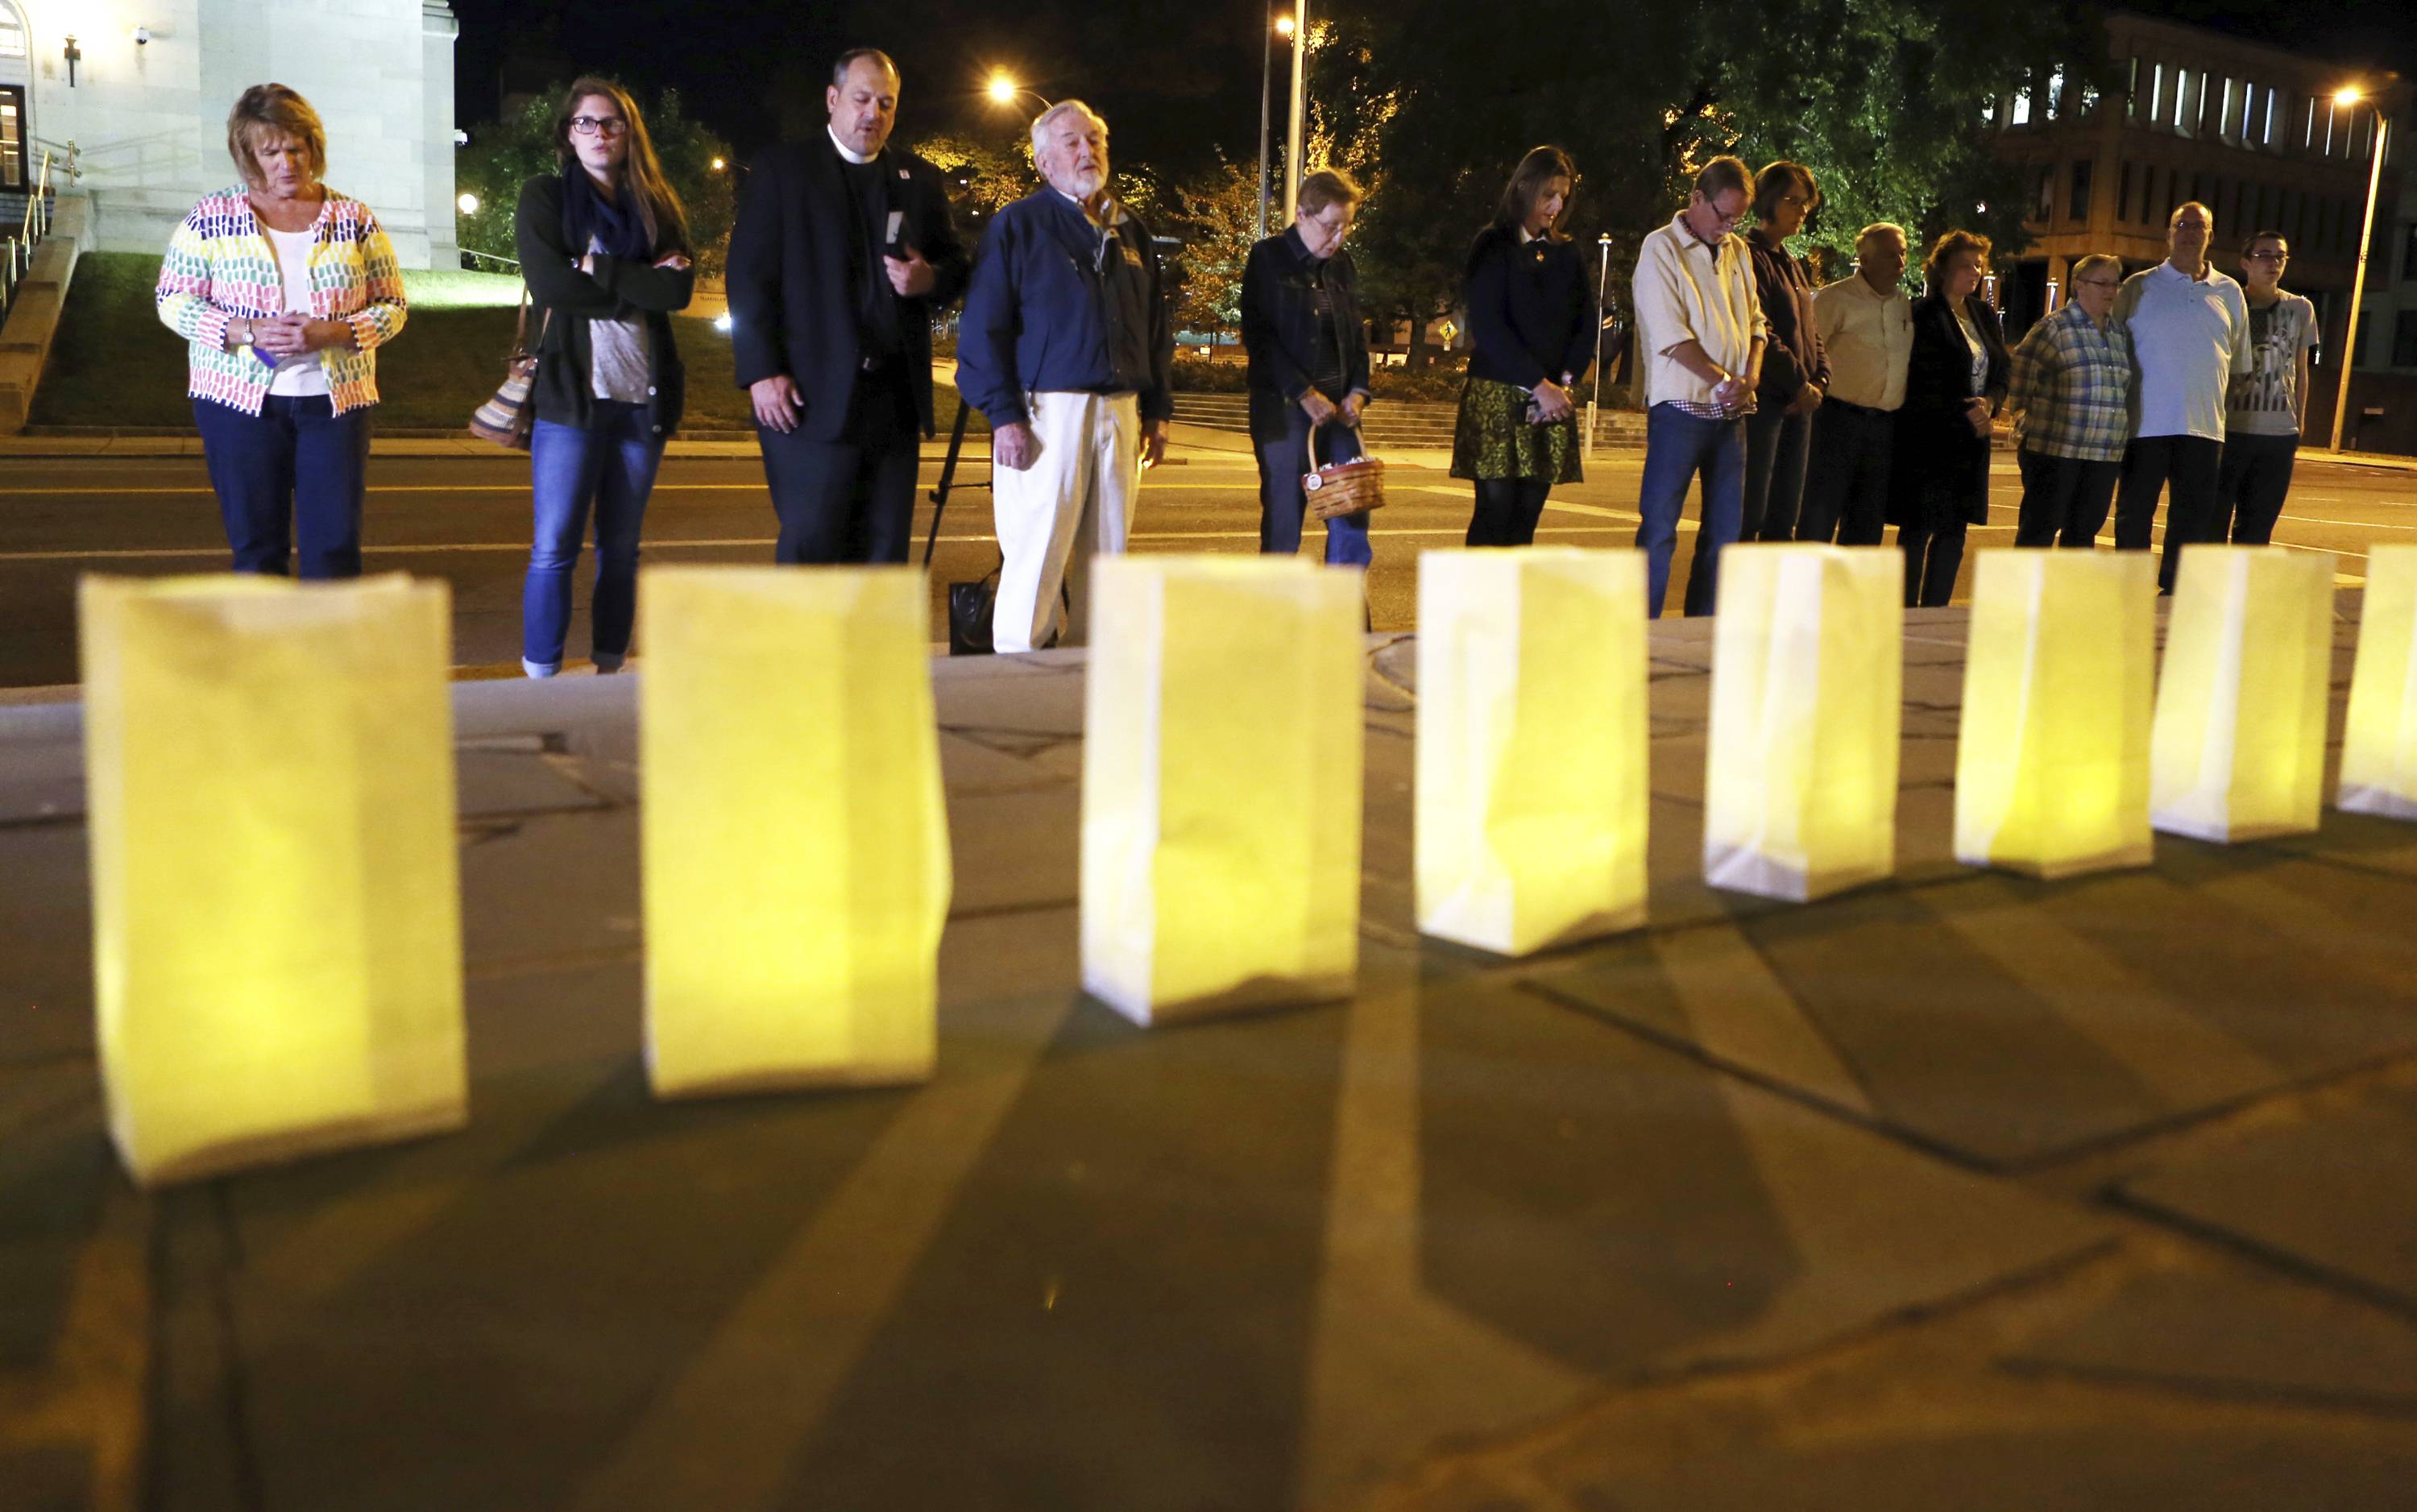 Luminaries for victims of the Sunday evening shooting tragedy in Las Vegas are lit on the front steps of Greene Memorial United Methodist Church surrounded by those brought together in prayer and solidarity on Monday, Oct. 2, 2017, in Roanoke, Va. (Heather Rousseau/The Roanoke Times via AP)